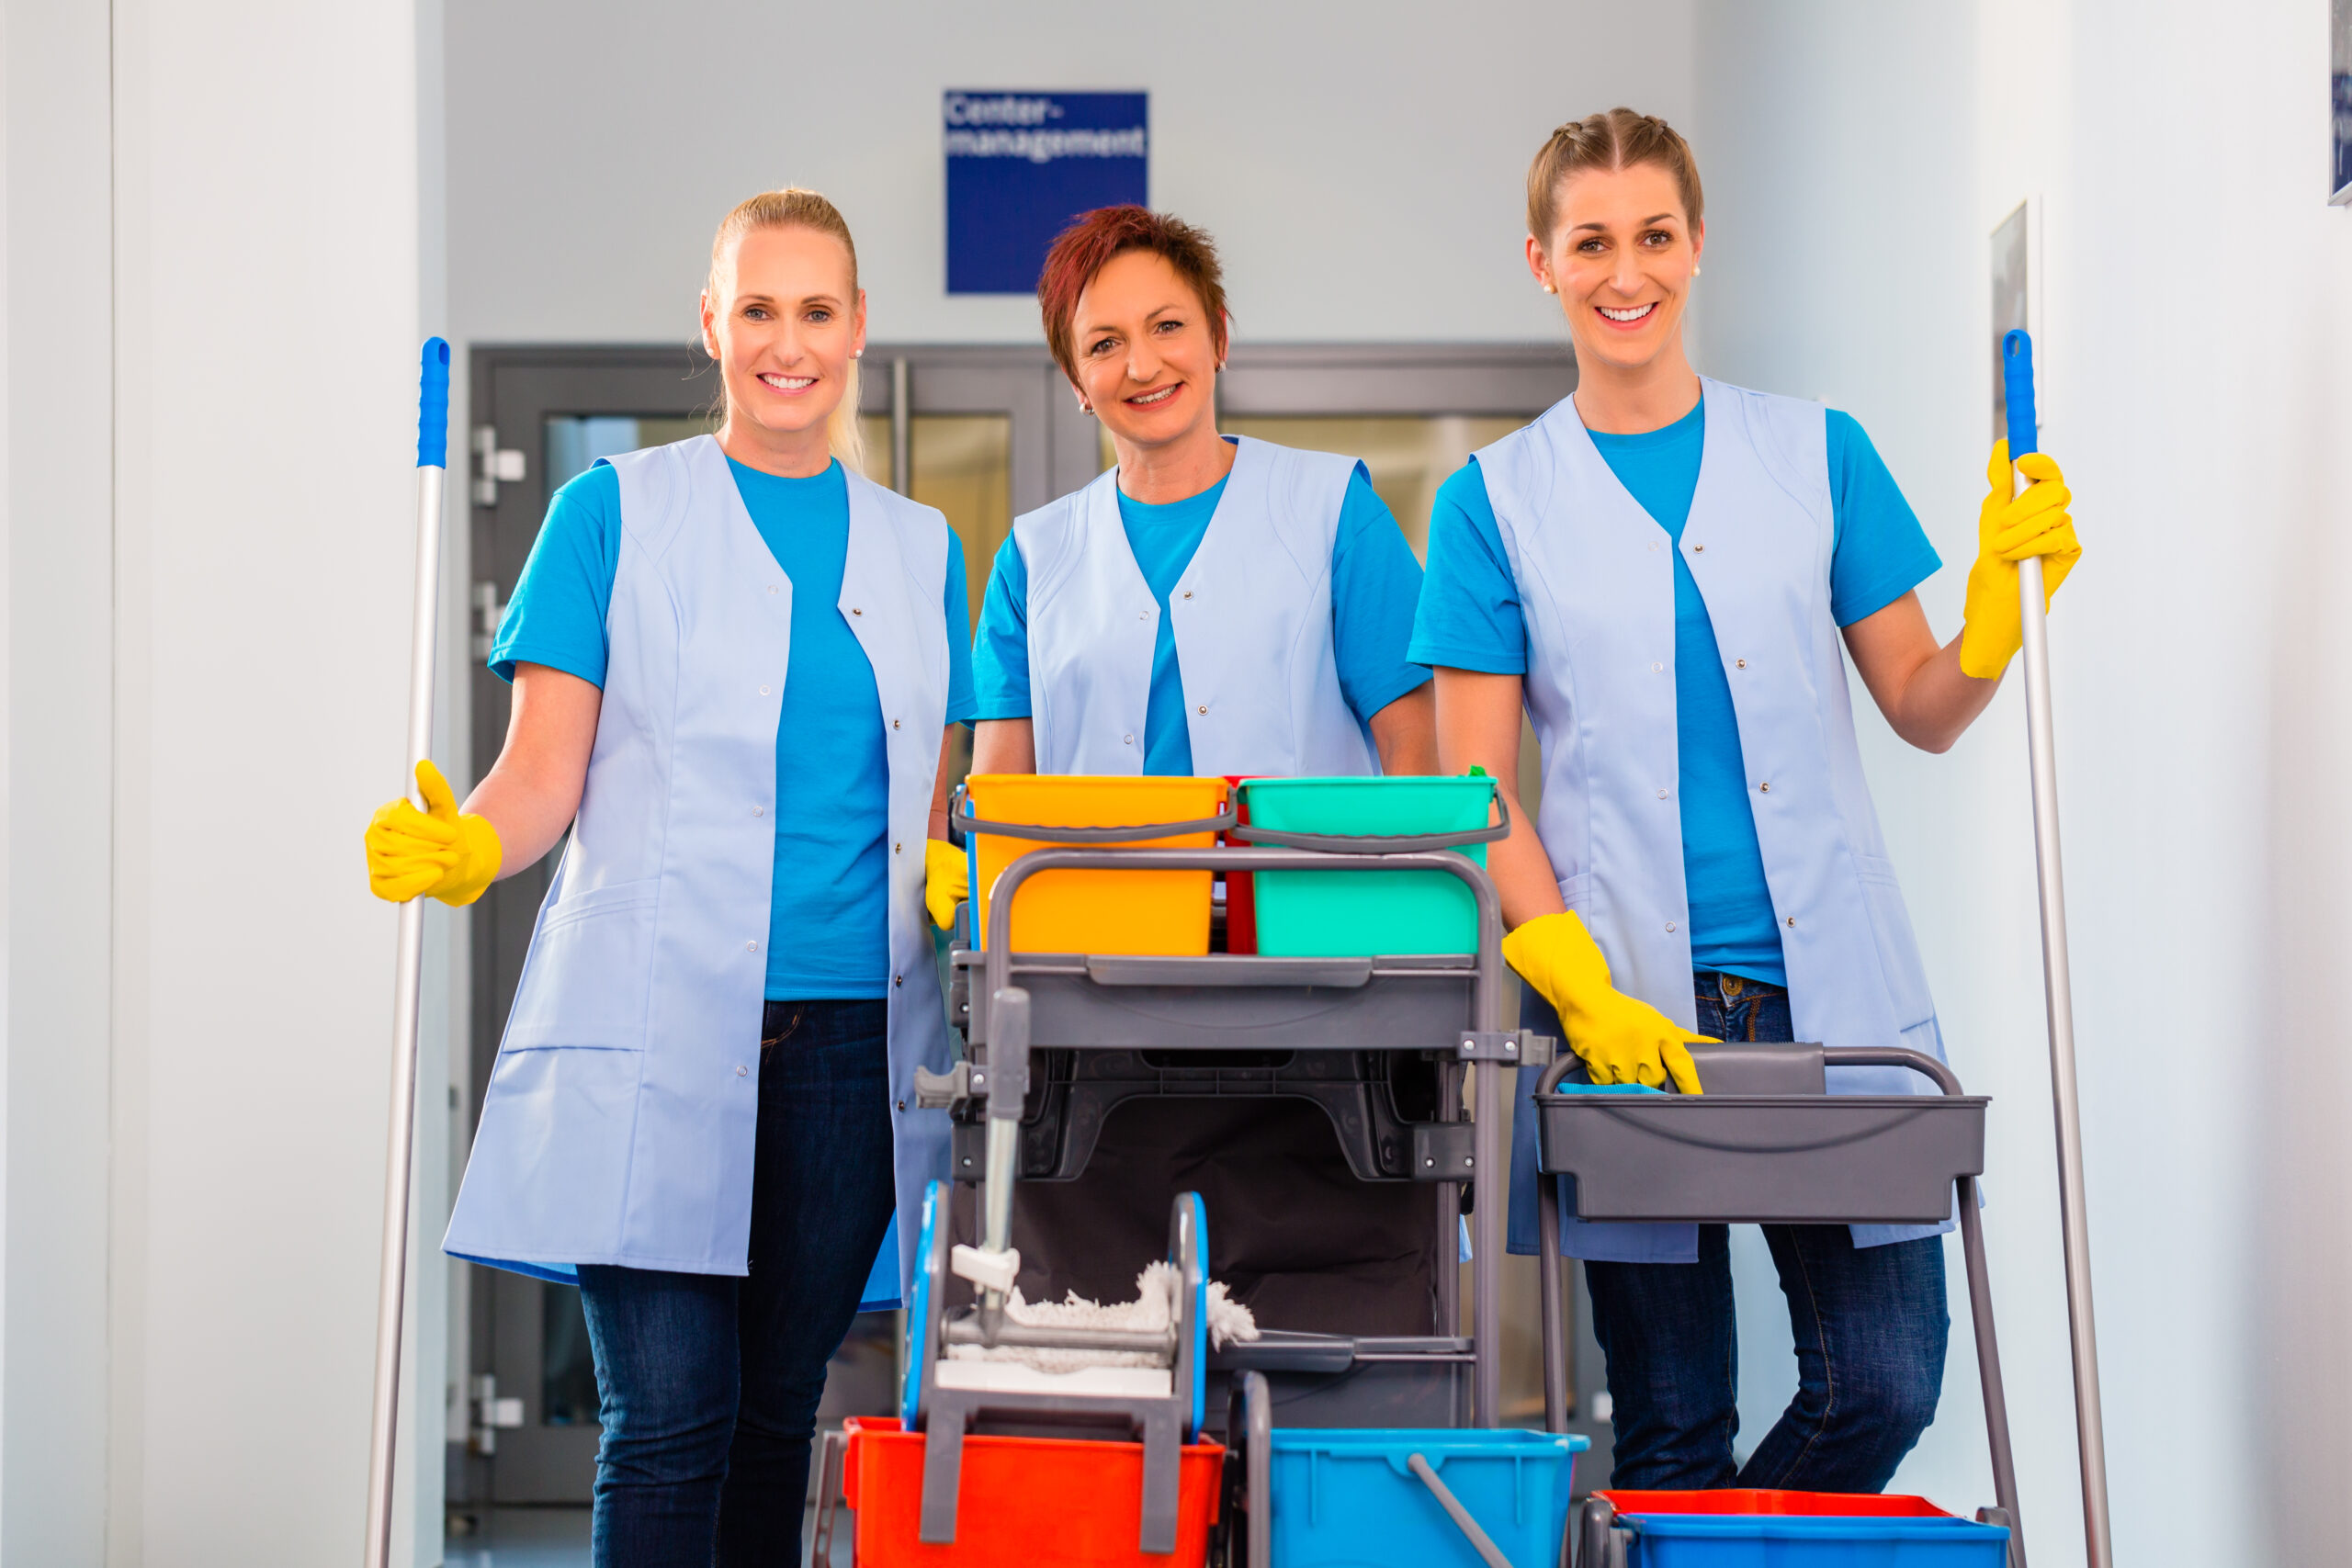 Cleaning Services Marketing